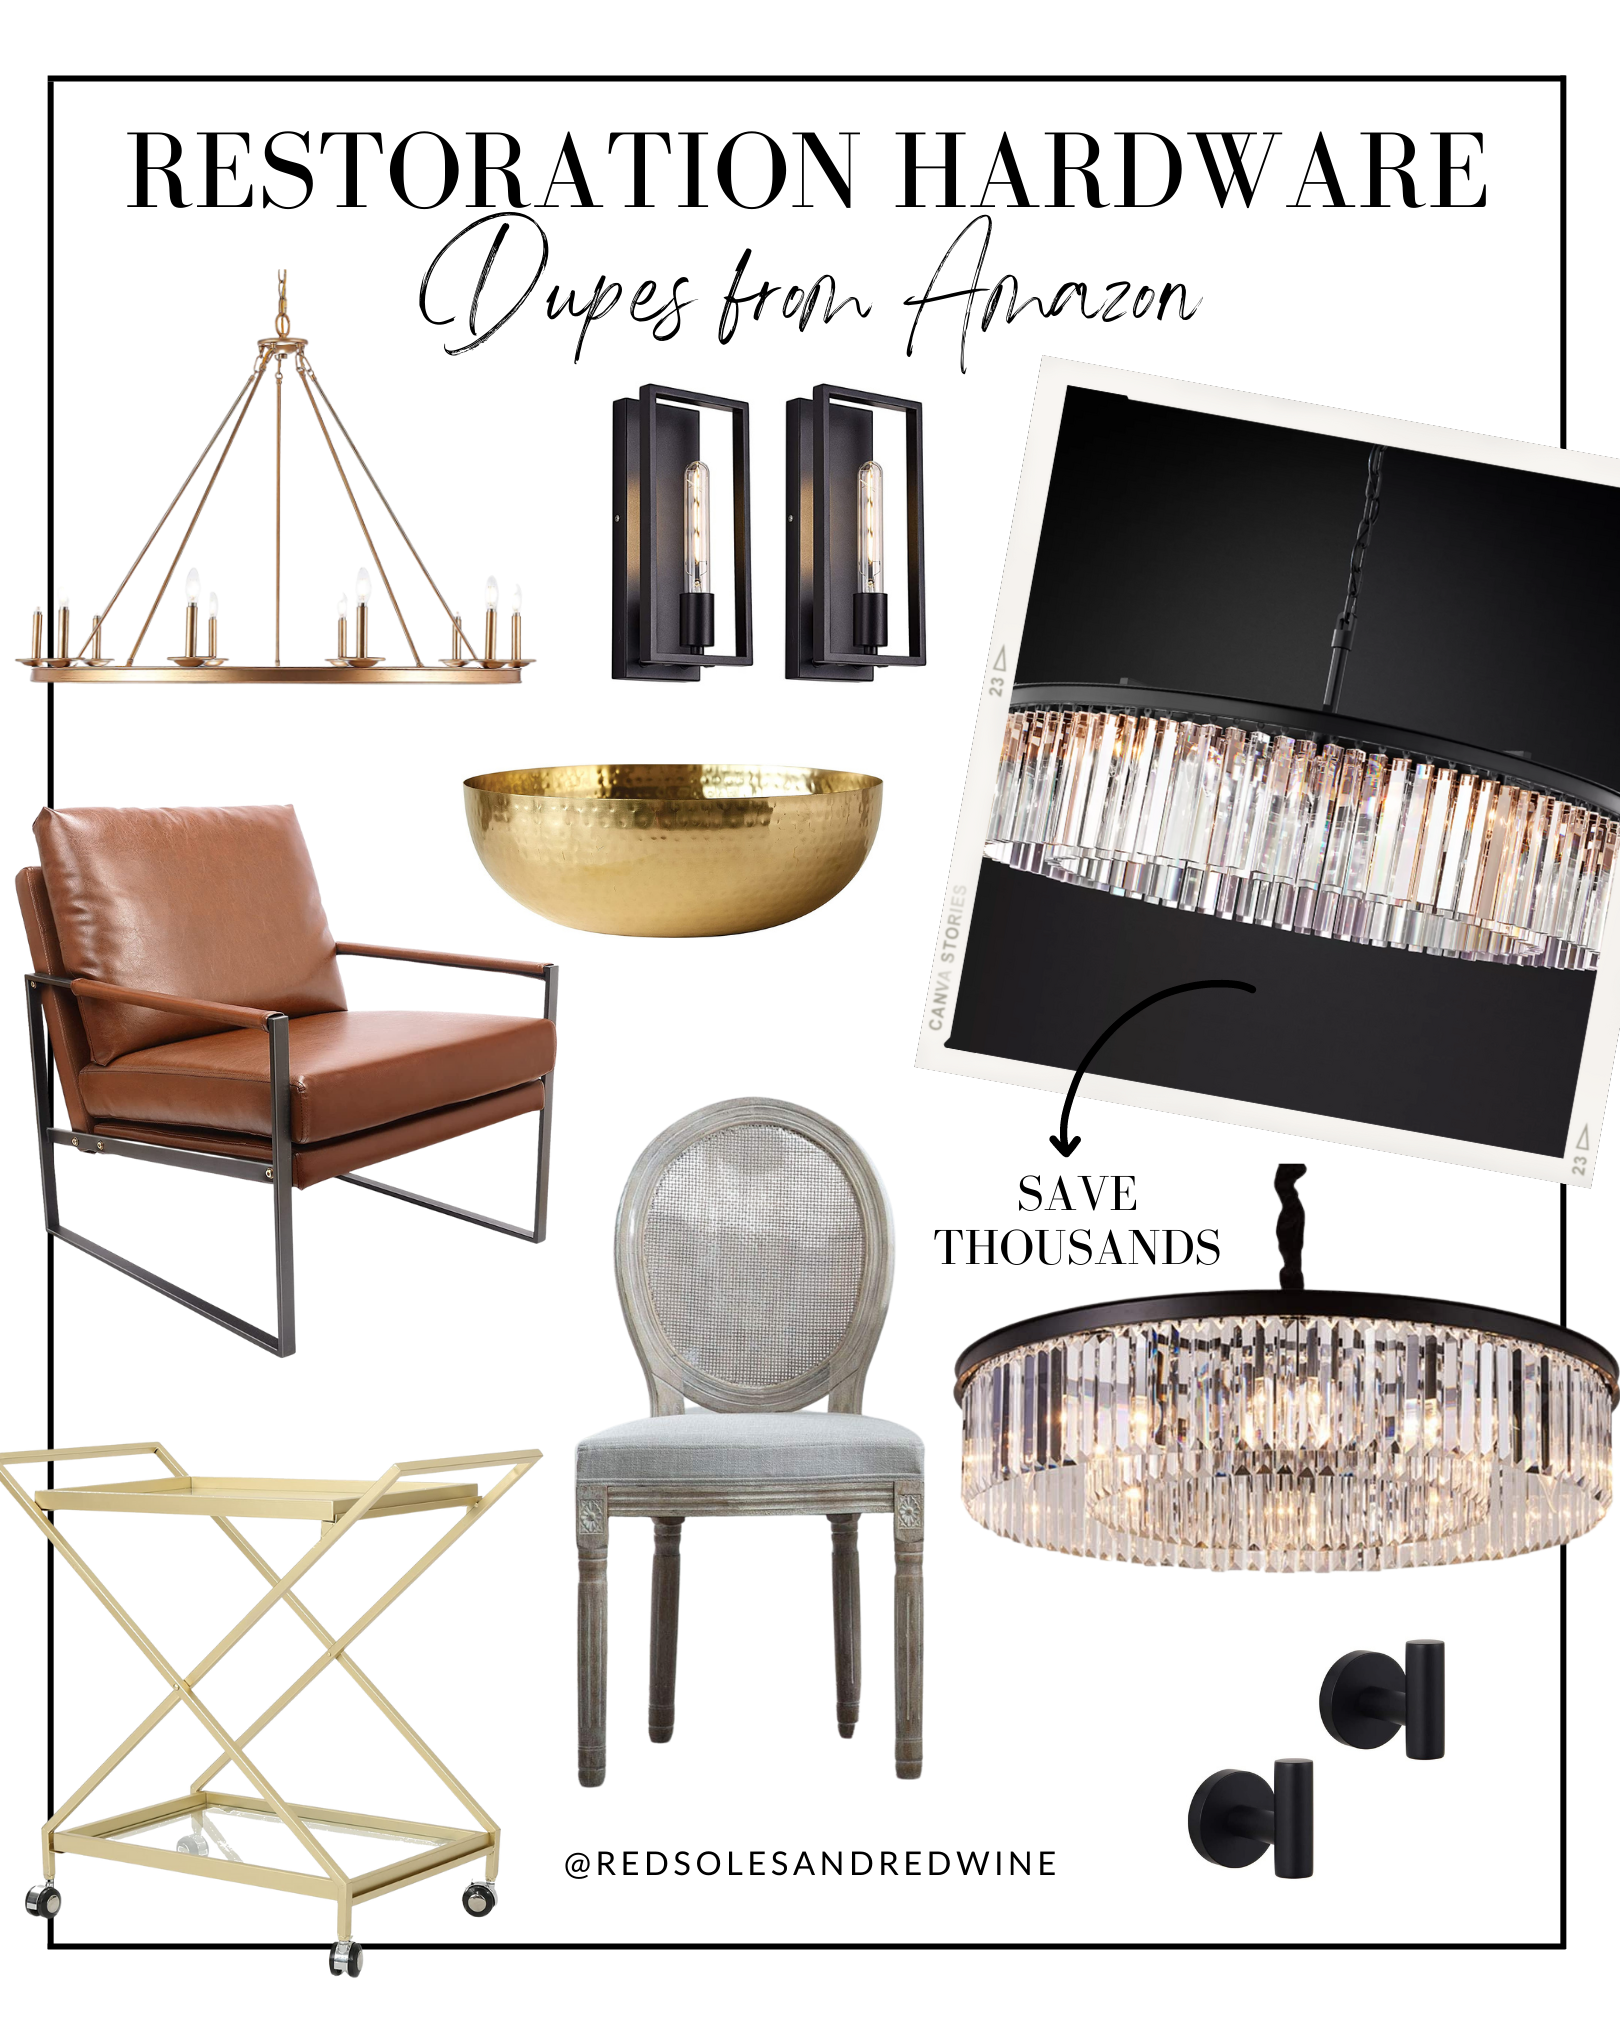 restoration hardware dupes from amazon, RH dupes, RH furniture dupes, RH lighting dupes, RH home decor dupes, amazon finds, affordable amazon finds, restoration hardware look for less